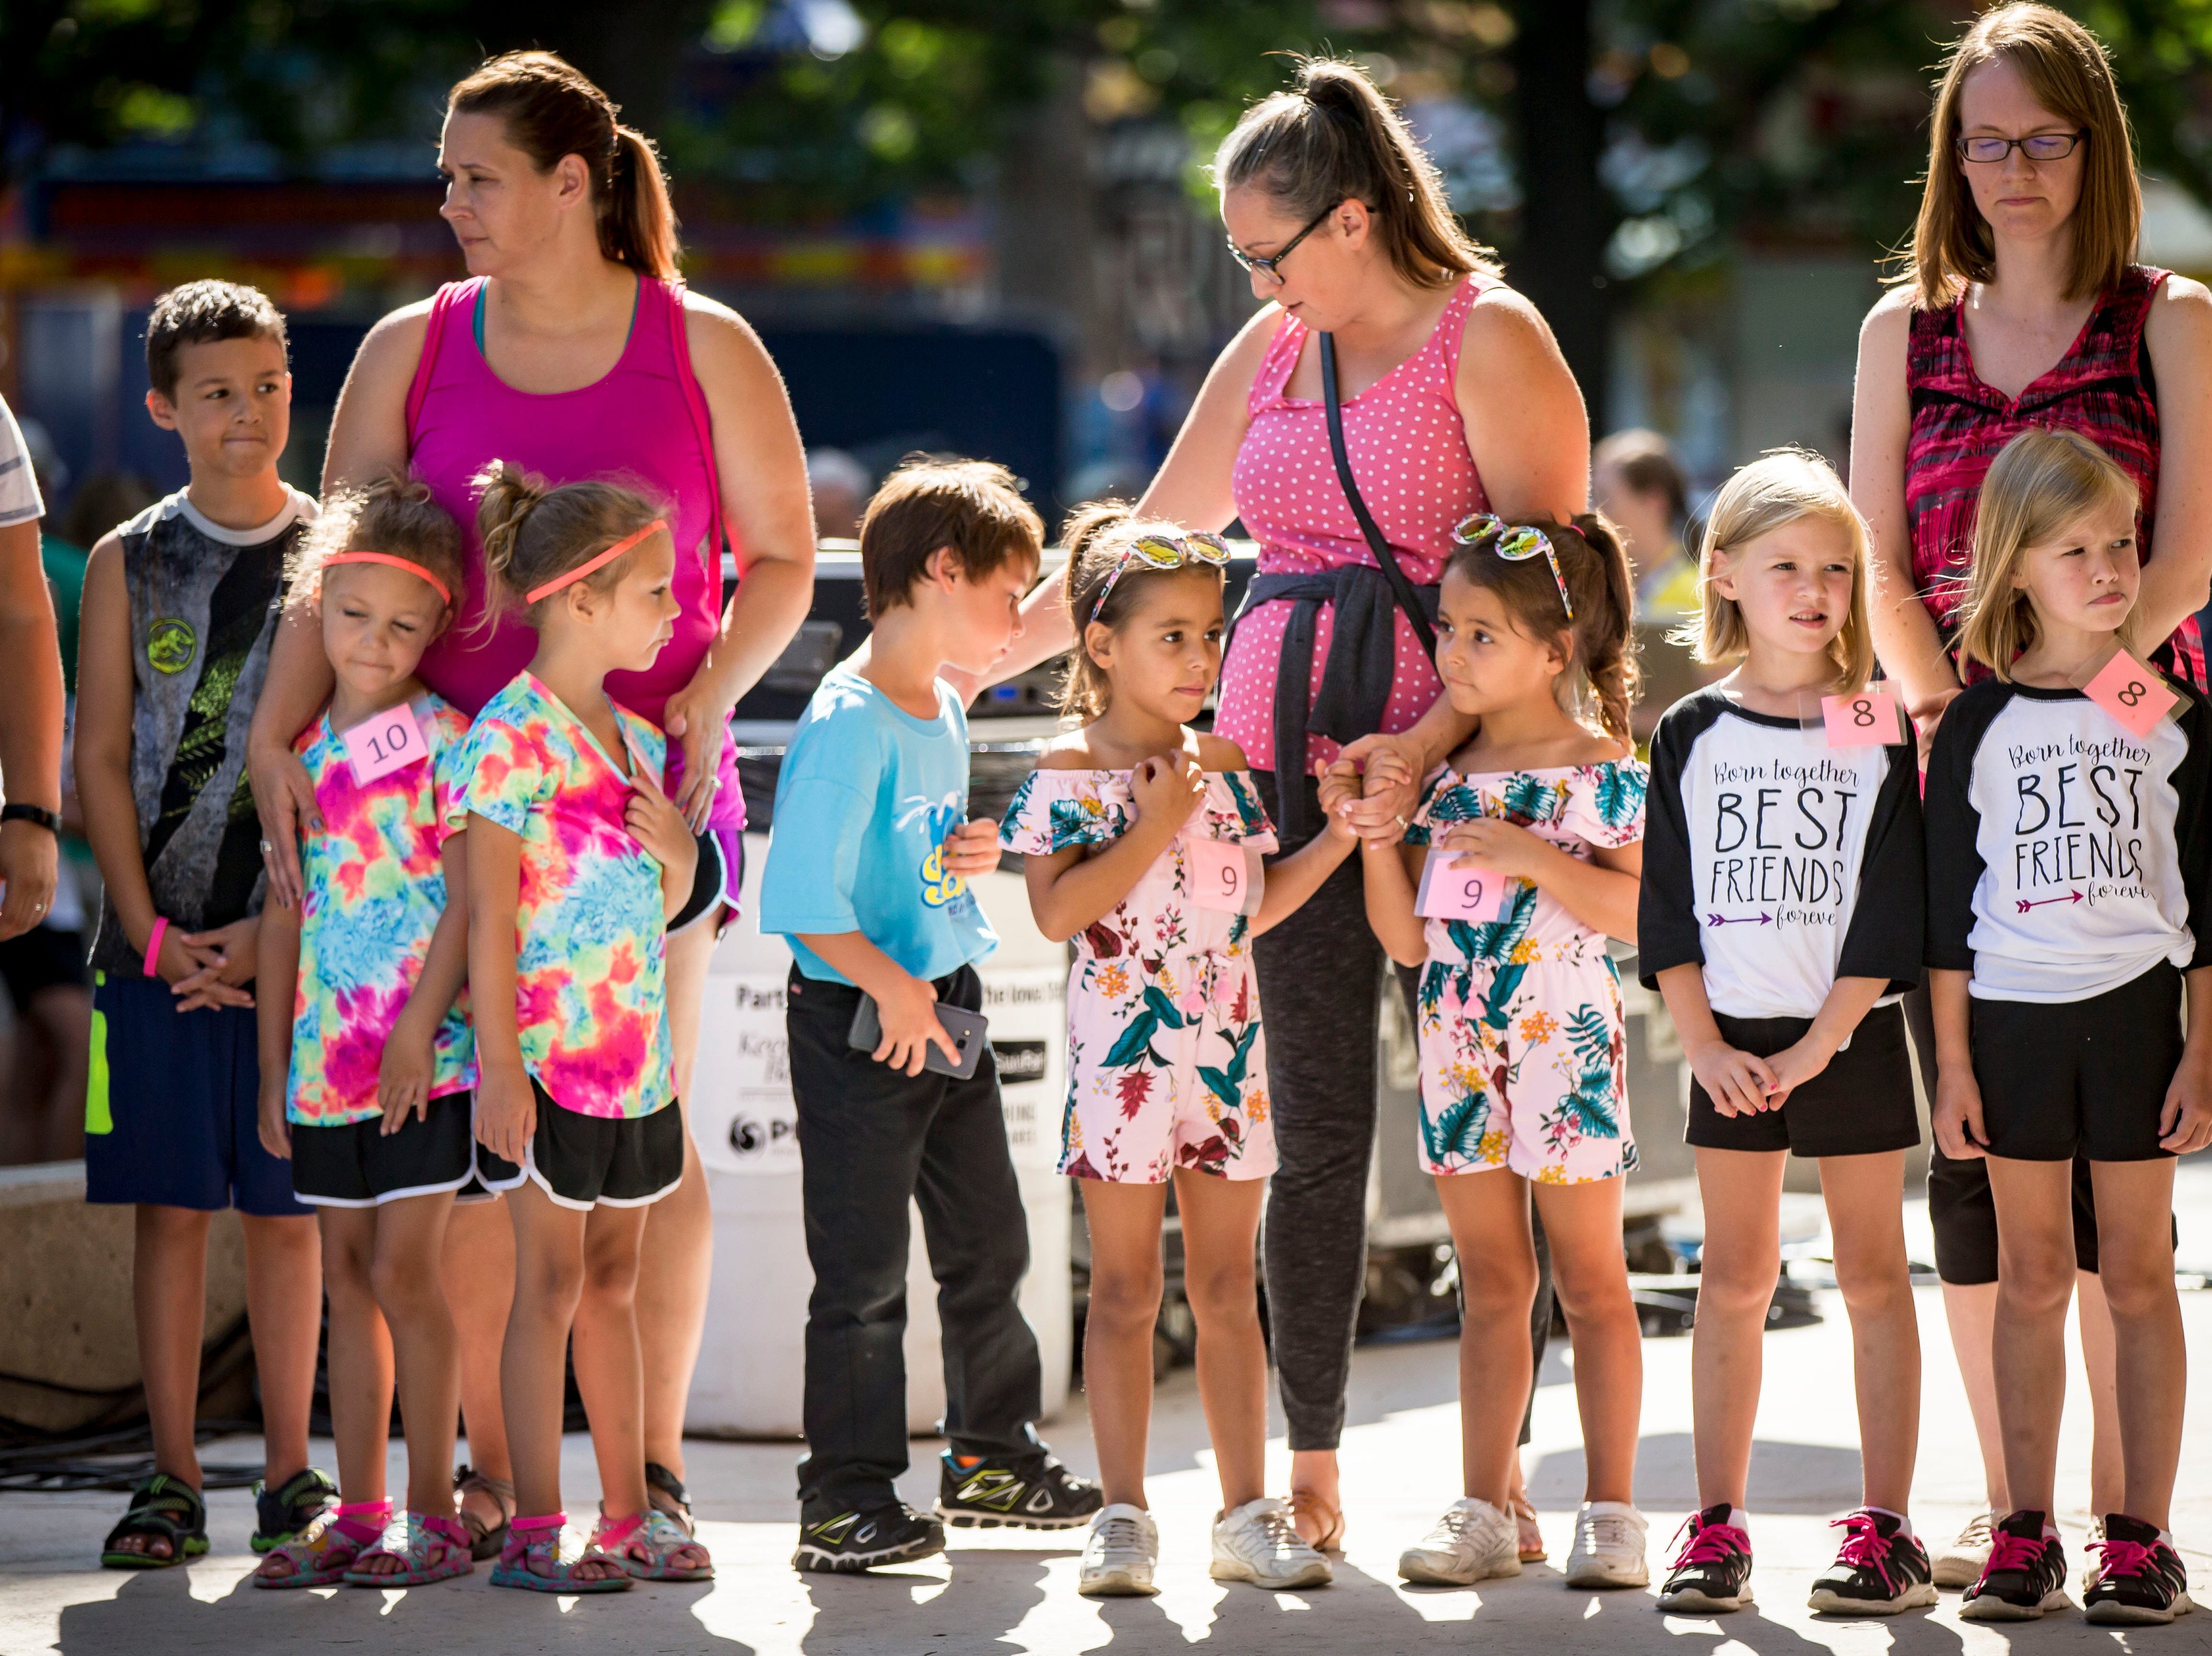 Five-year-olds wait to compete in the most alike category during the Twins, Triplets and More Contest on the Anne and Bill Riley Stage at the 2018 Iowa State Fair in Des Moines Thursday, Aug. 9, 2018.